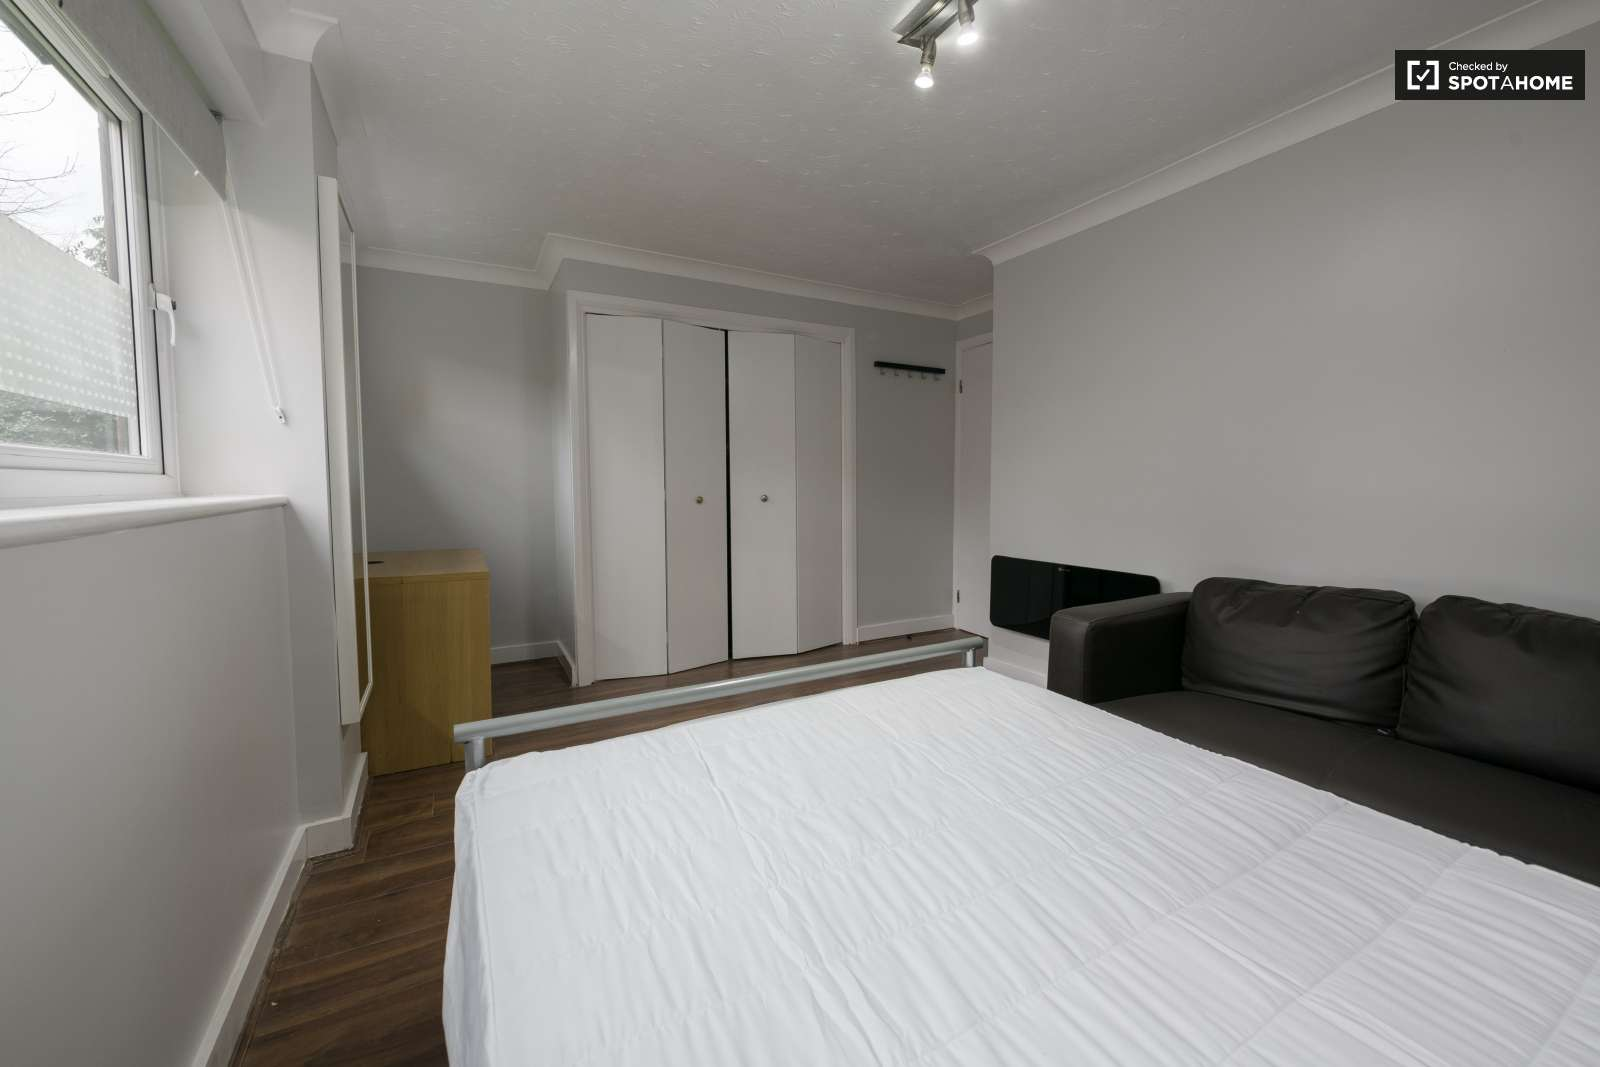 Twin Beds In Rooms To Rent In Modern 4 Bedroom Apartment In